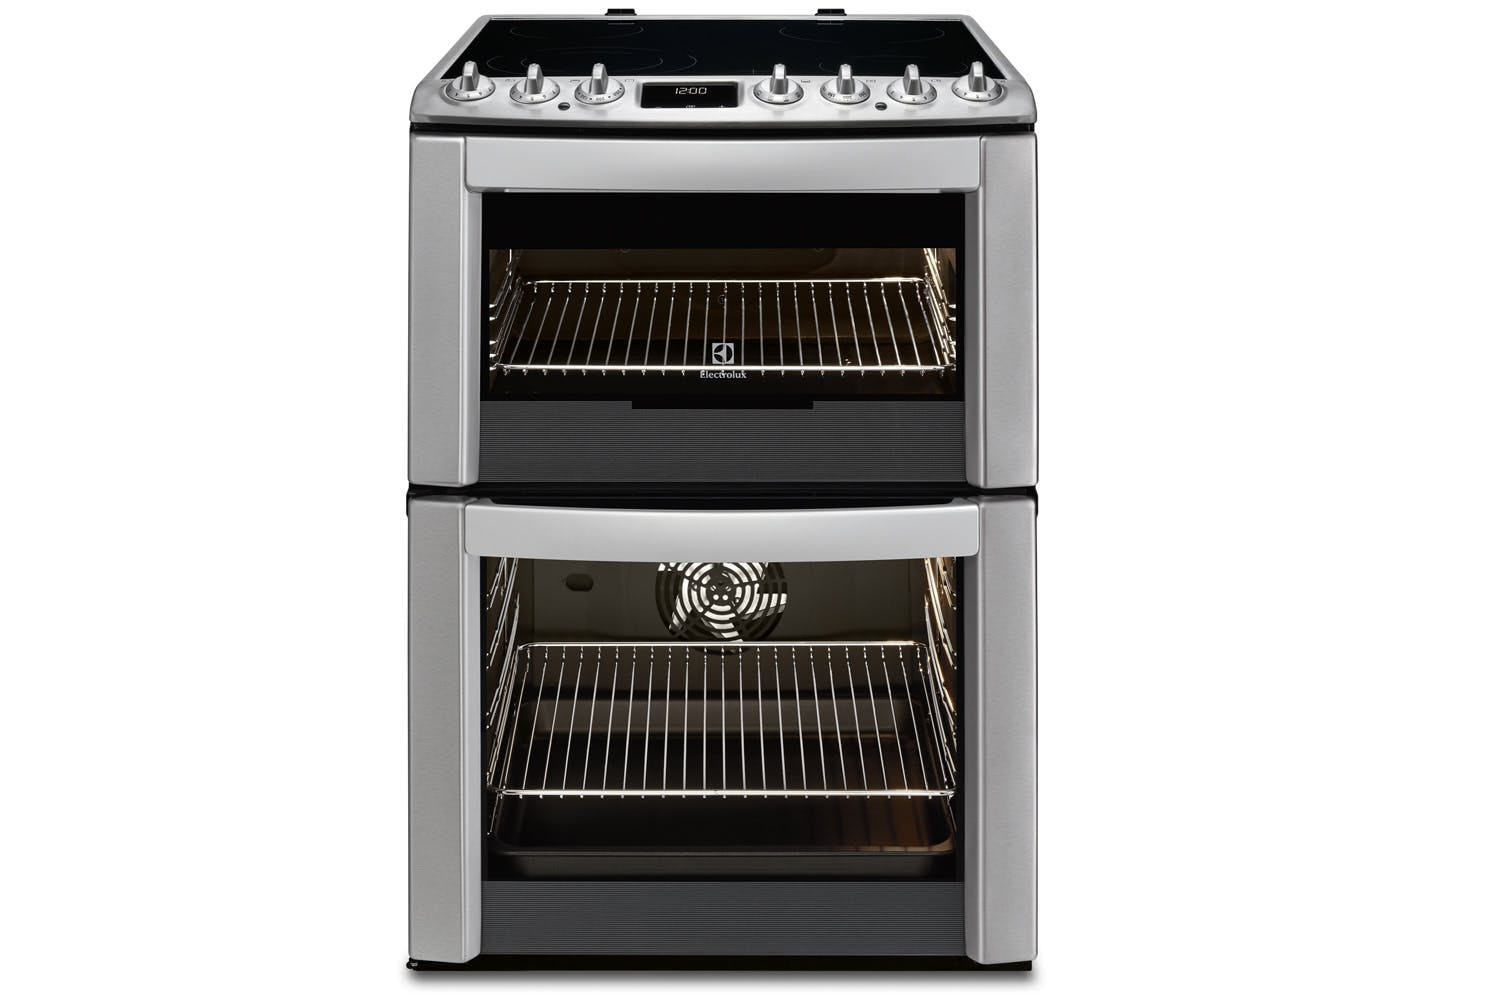 Electrolux 60cm Electric Cooker | EKC6562AOX | Stainless Steel